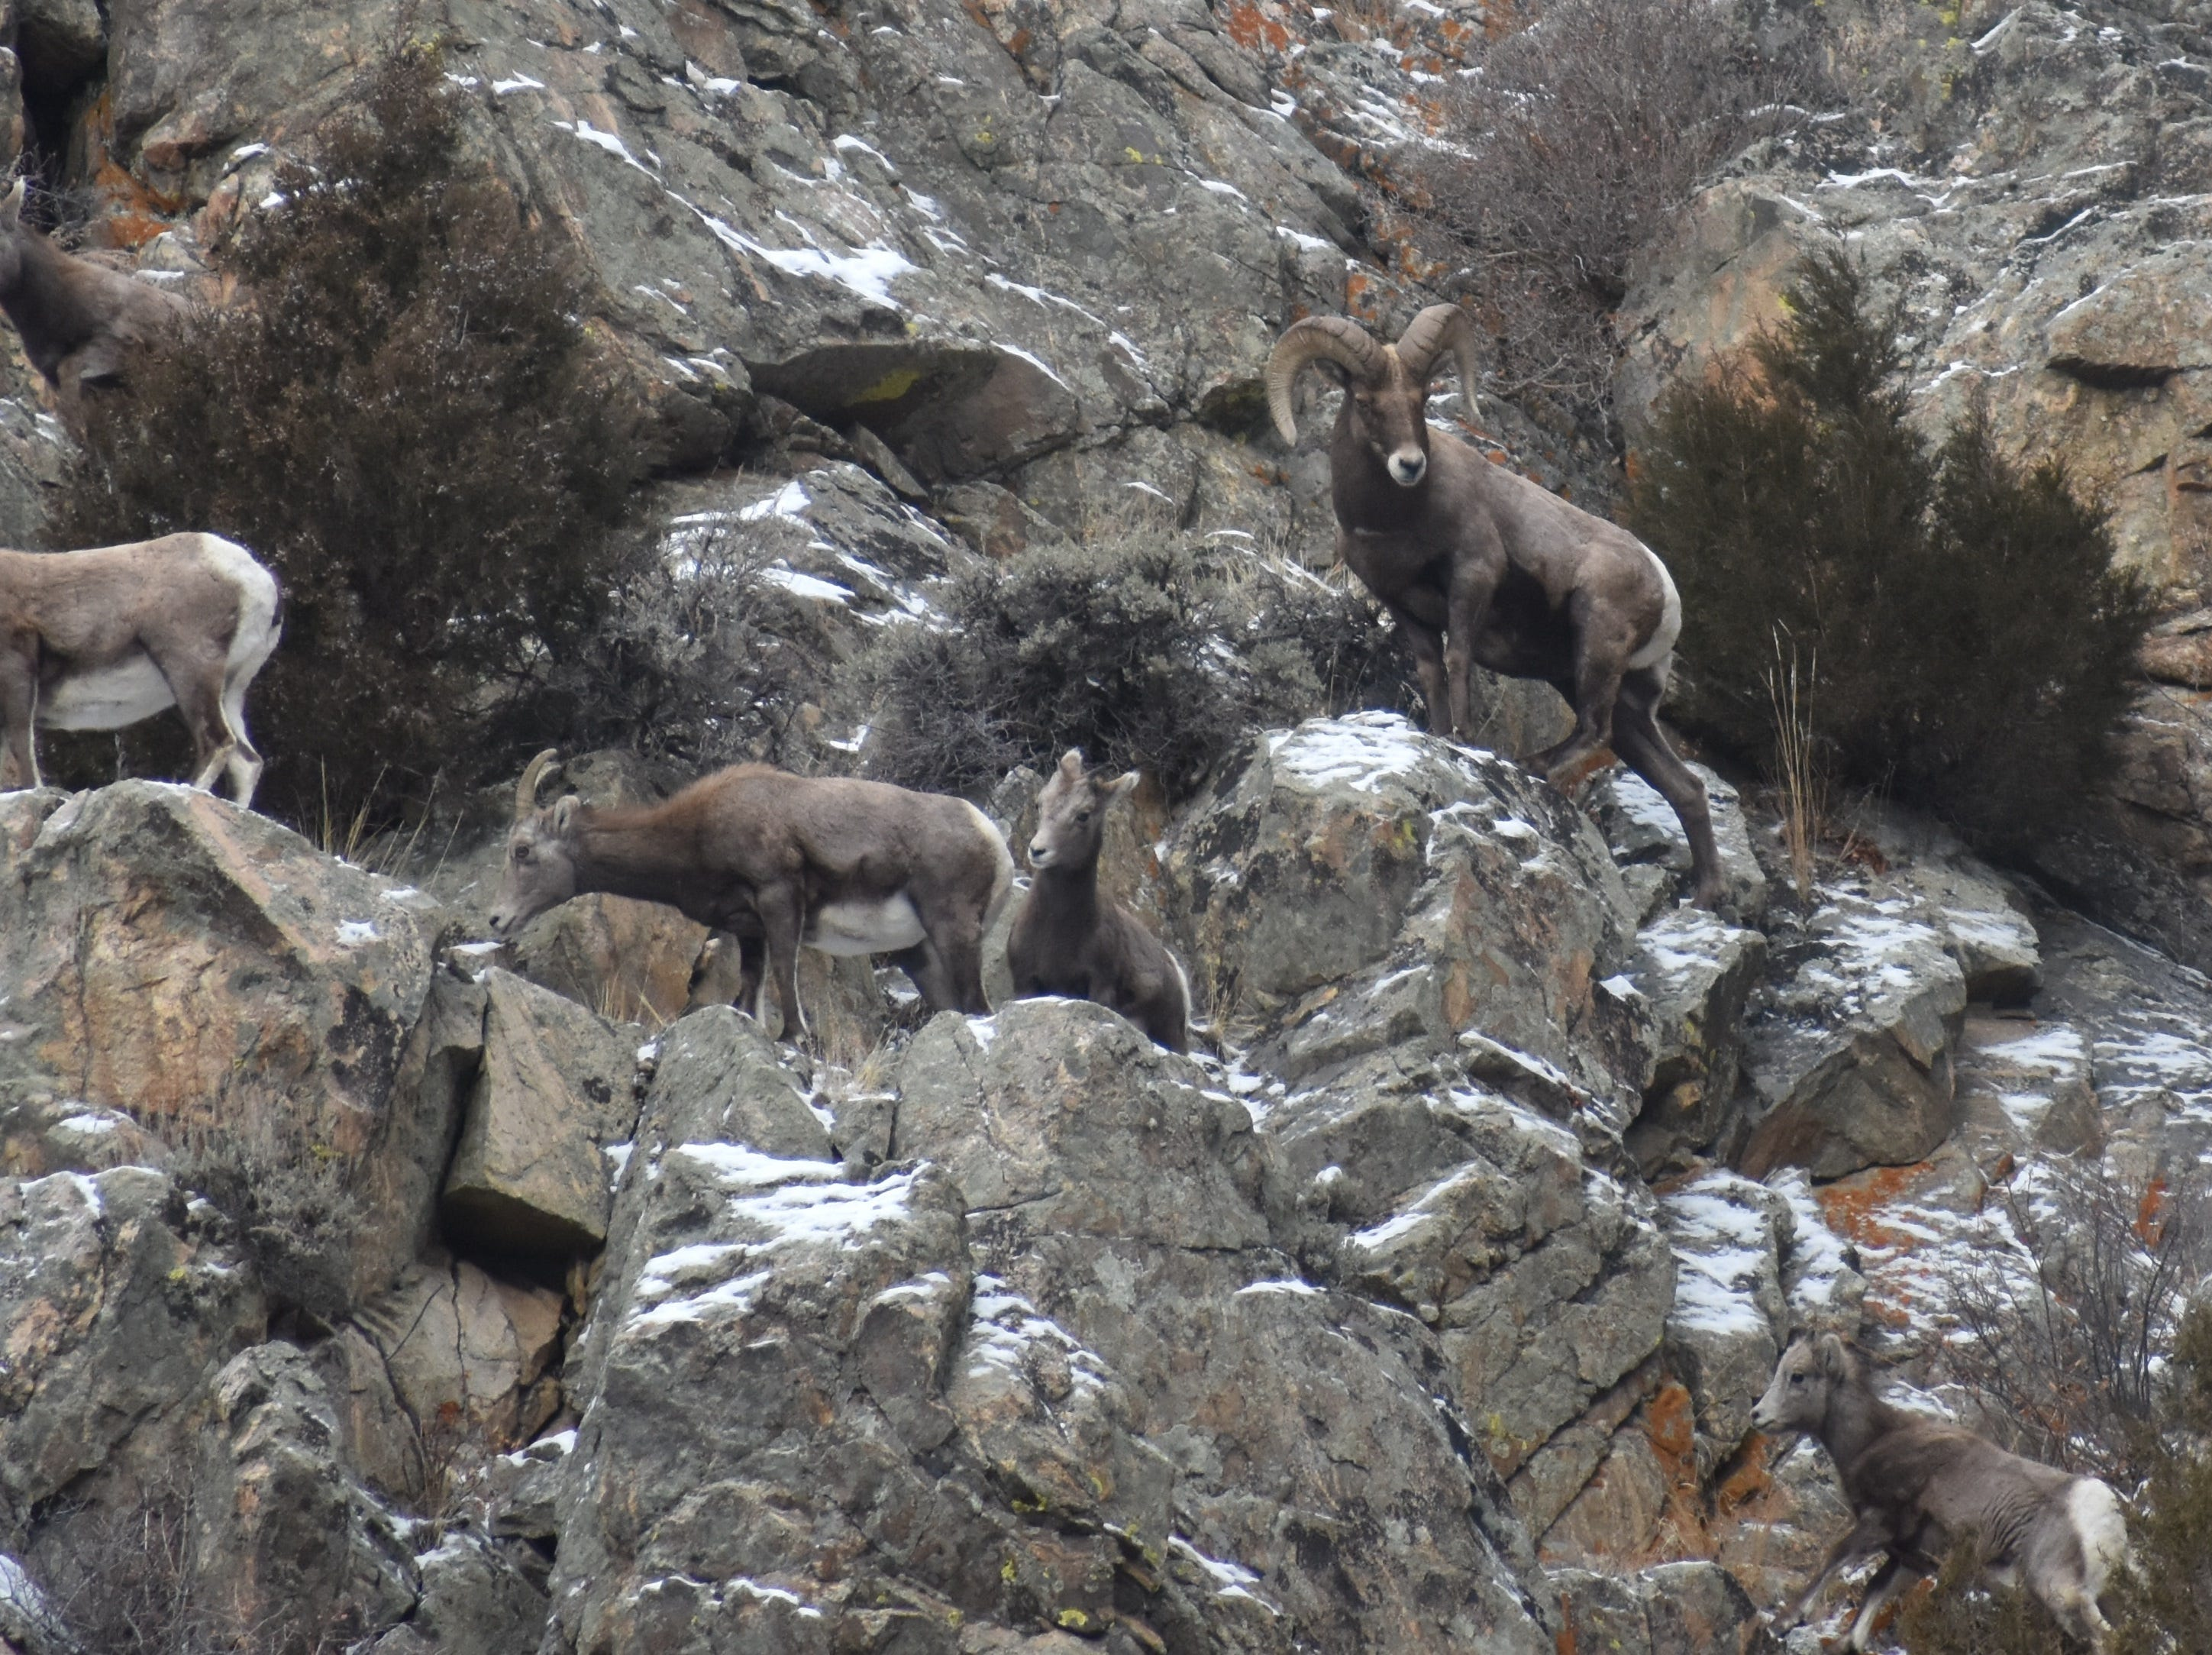 A bighorn ram keeps guard over ewes near Big Bend Campground up the Poudre Canyon.